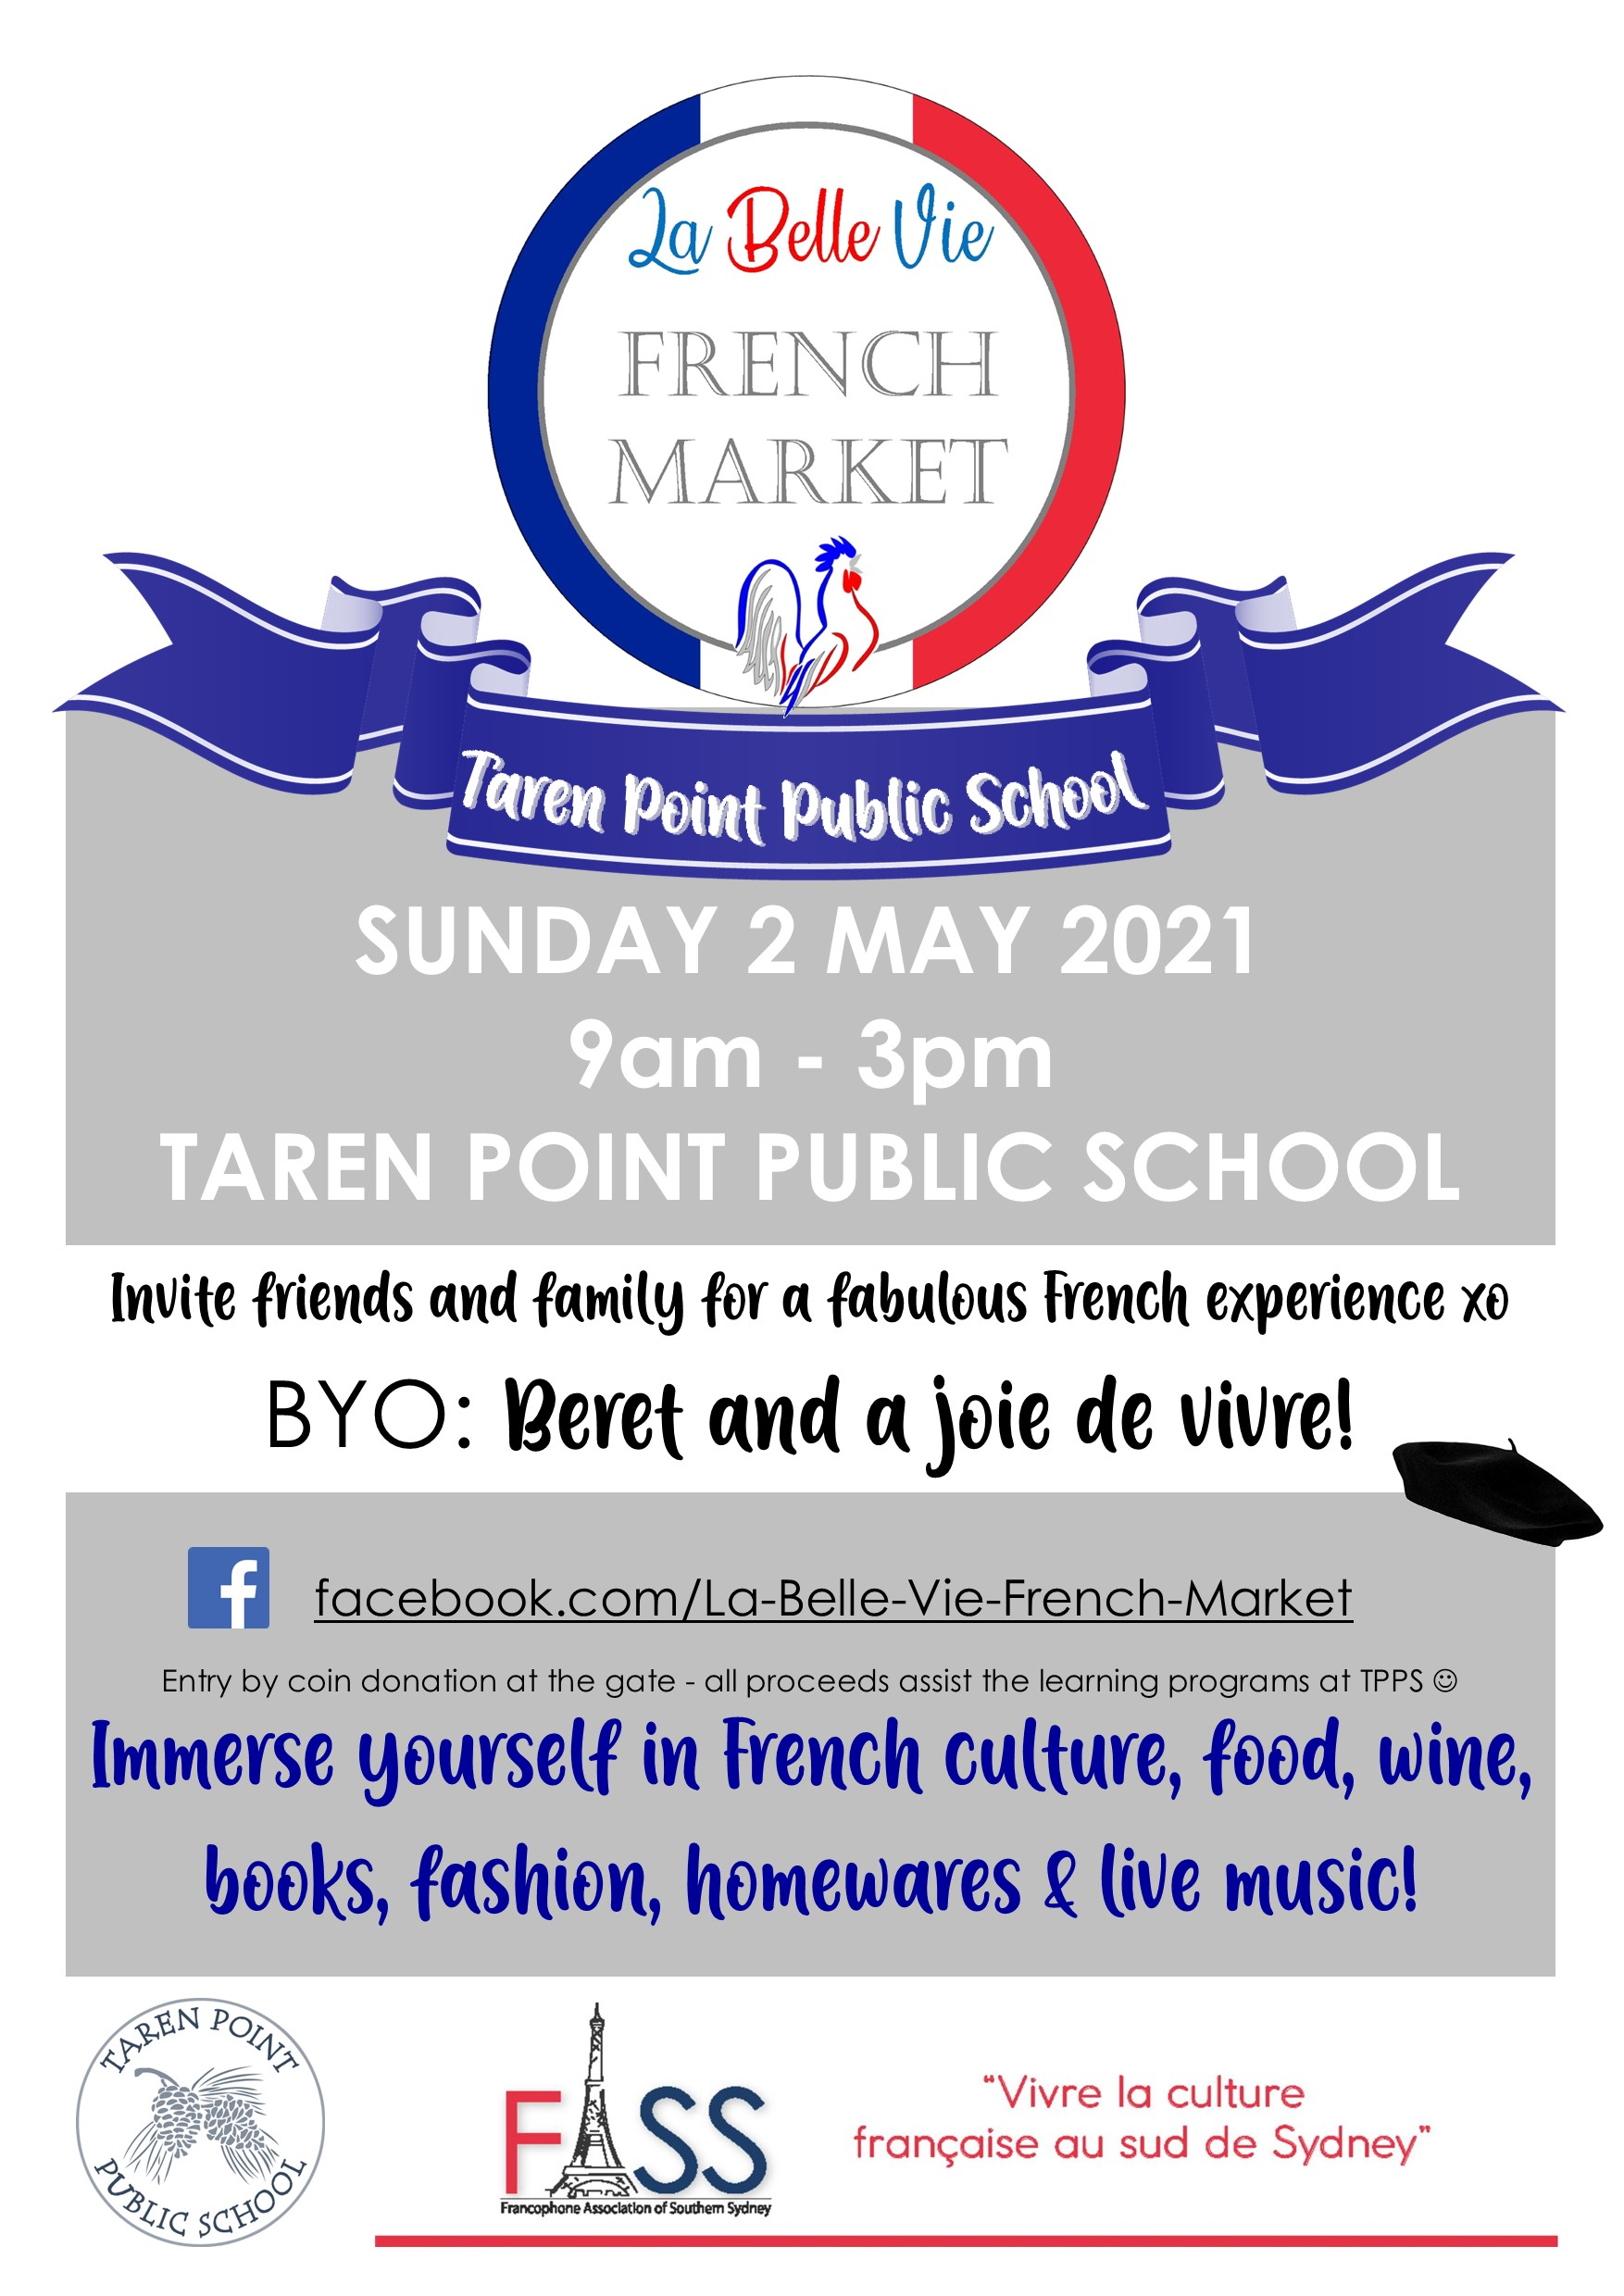 French Market at Taren Point Public School